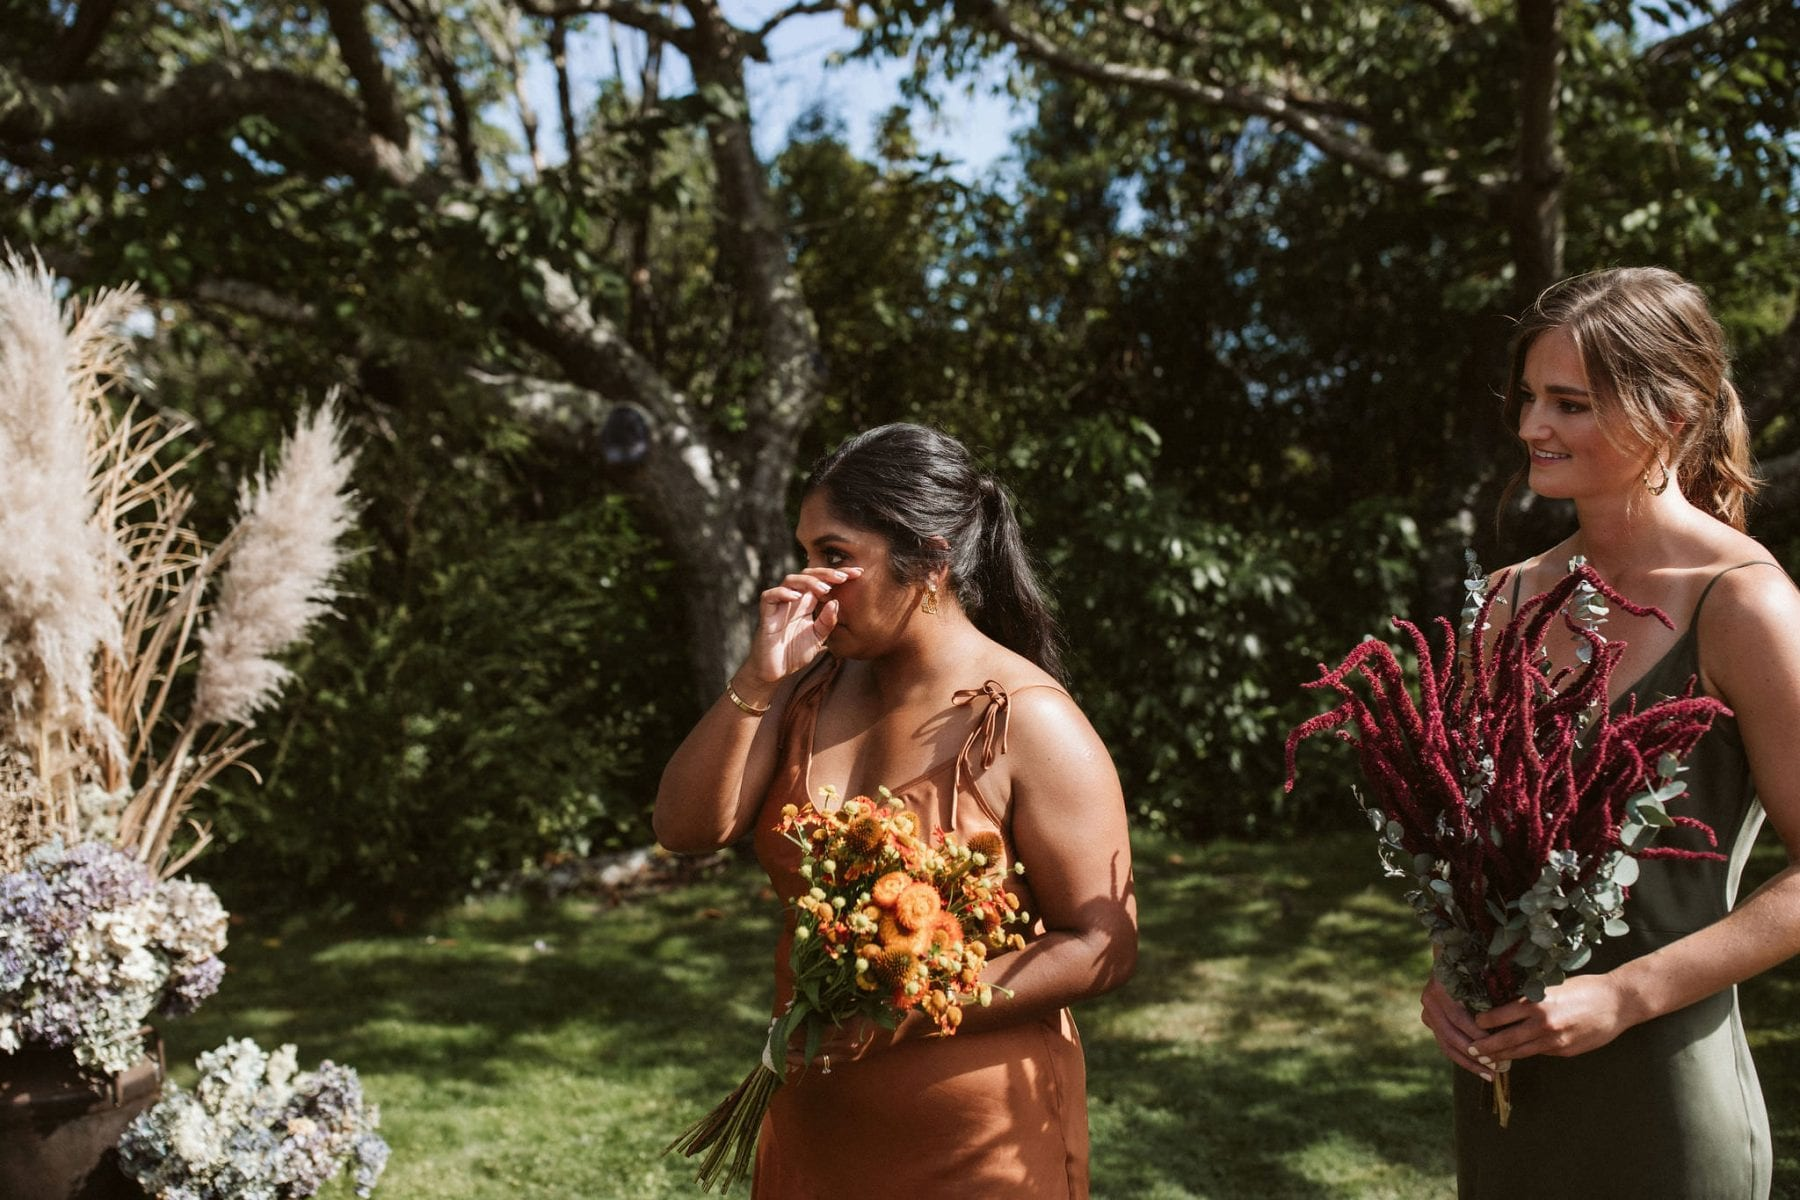 Sarah + Jeremy \\ Taupo Wedding captured by Ana Galloway. Hayes Bridal, Meadowlark. Modern Bride. New Zealand. Bridesmaids. Dried Flower bouquet.